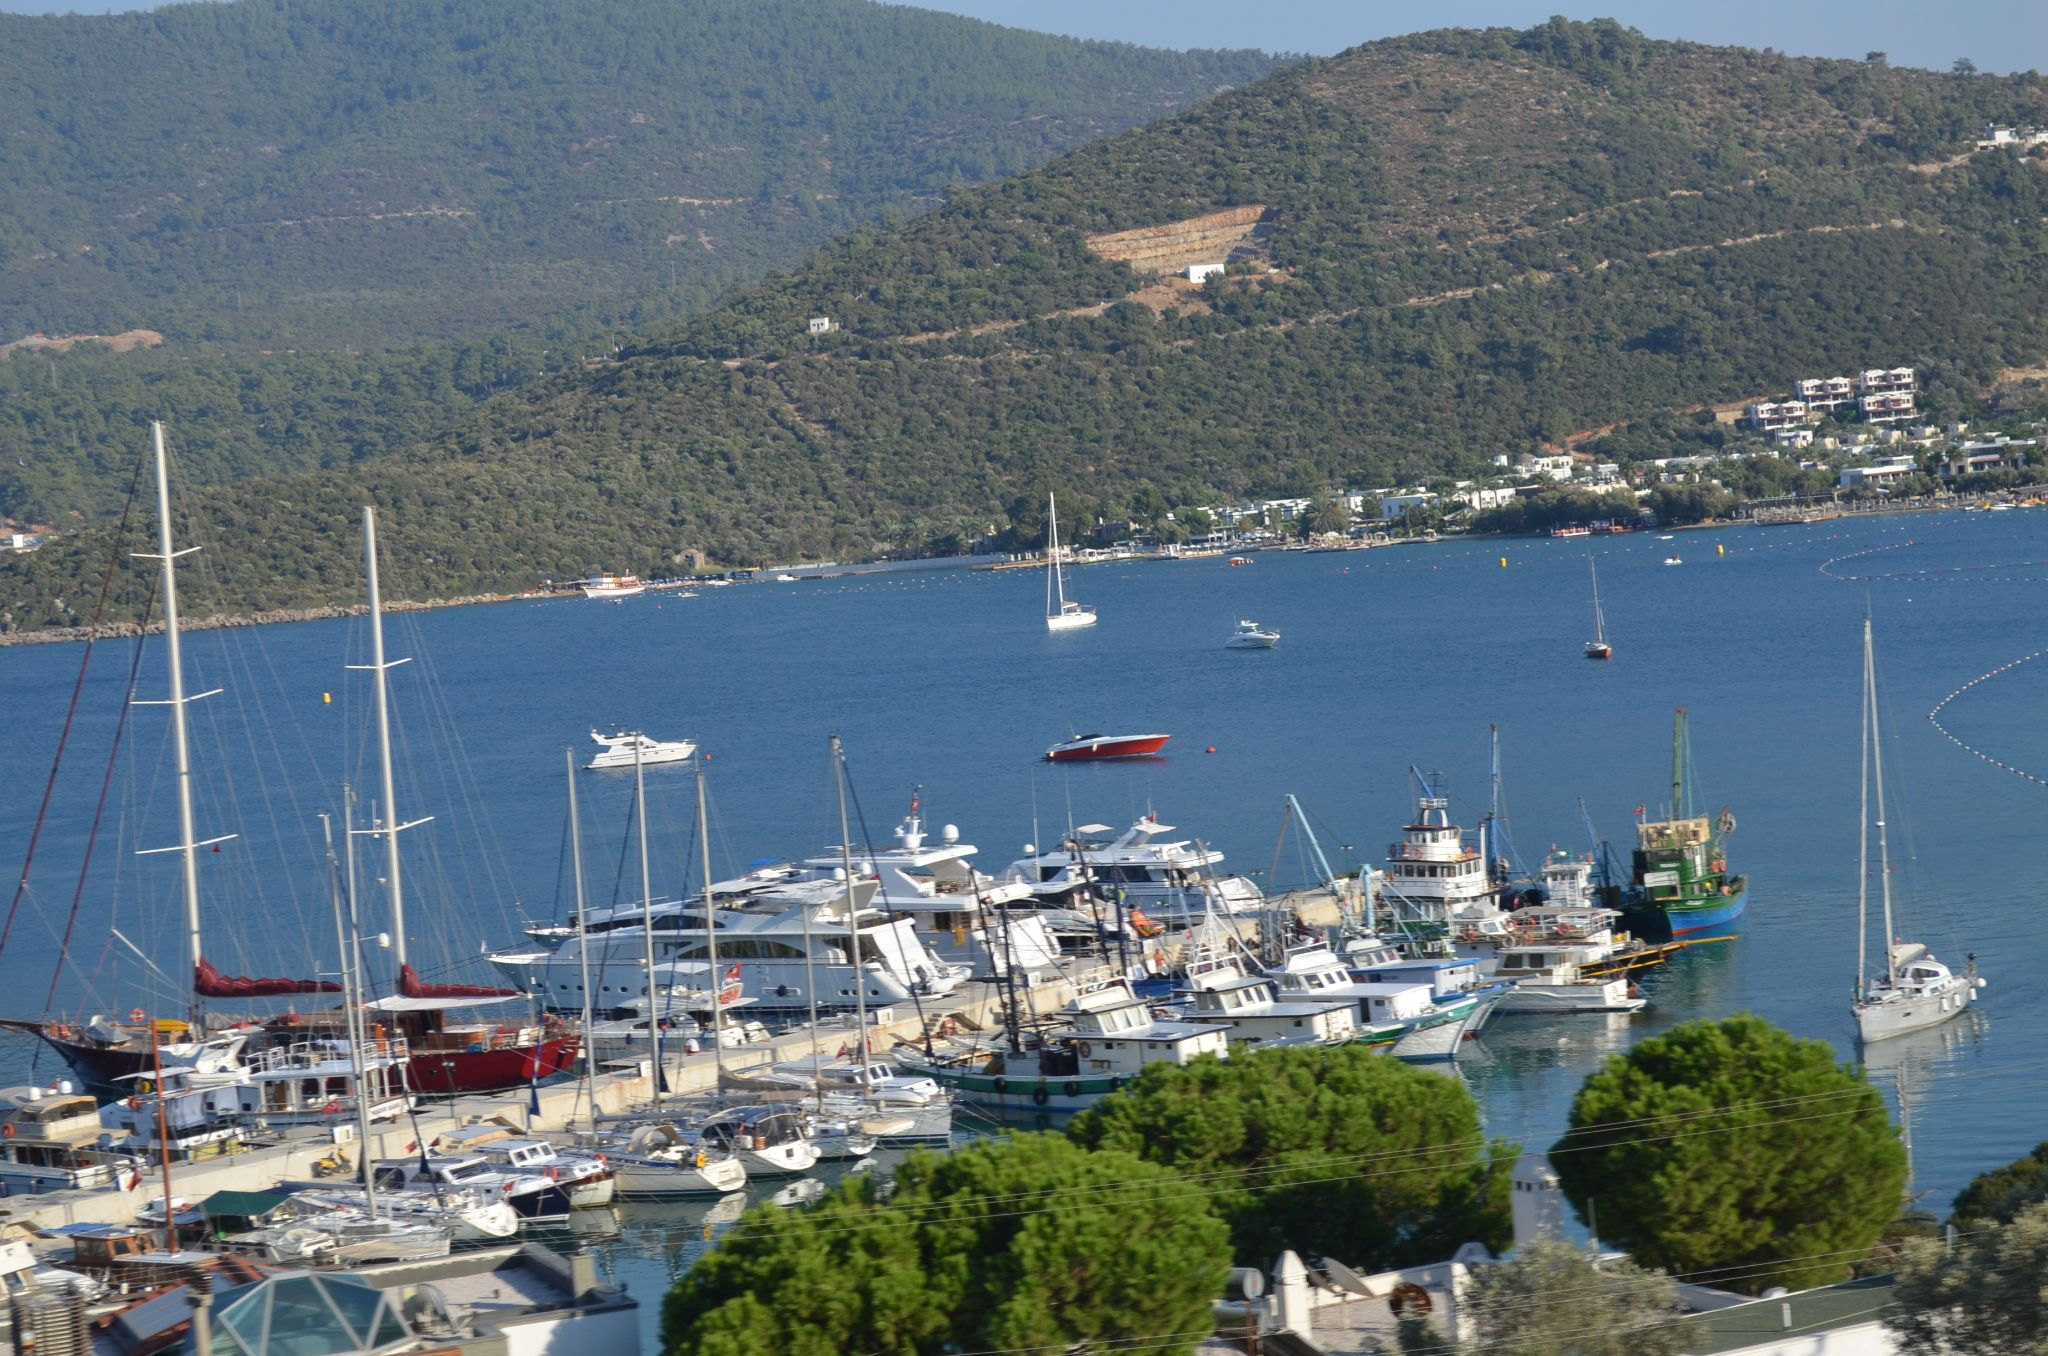 bodrum by ercan